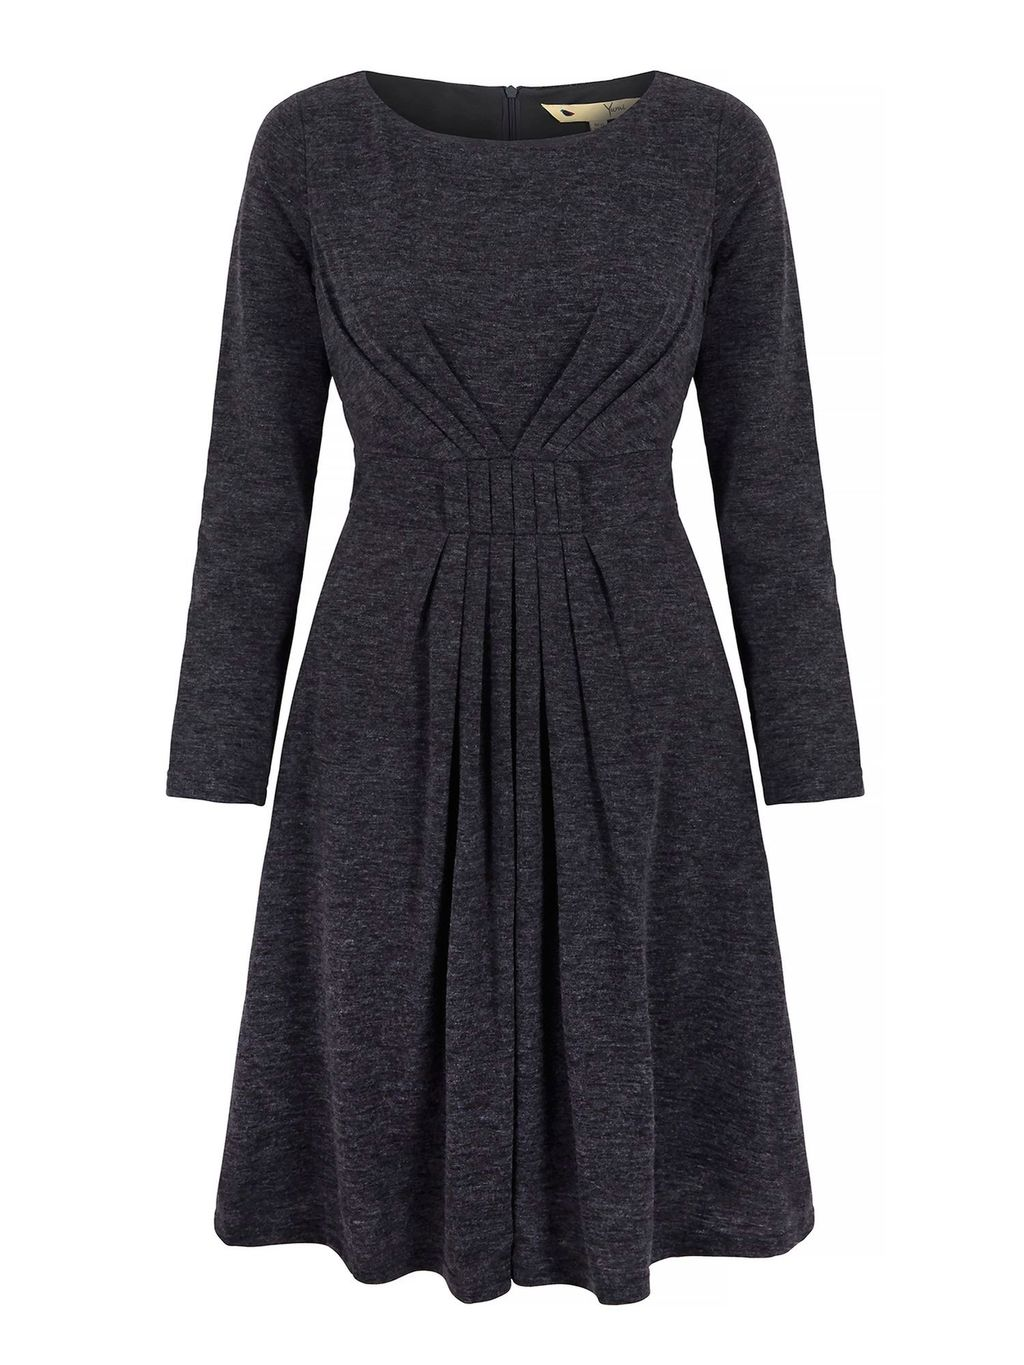 Long Sleeve Midi Dress, Grey - style: shift; neckline: round neck; fit: fitted at waist; pattern: plain; waist detail: twist front waist detail/nipped in at waist on one side/soft pleats/draping/ruching/gathering waist detail; predominant colour: charcoal; occasions: casual, creative work; length: just above the knee; fibres: polyester/polyamide - mix; sleeve length: long sleeve; sleeve style: standard; texture group: knits/crochet; pattern type: fabric; season: a/w 2015